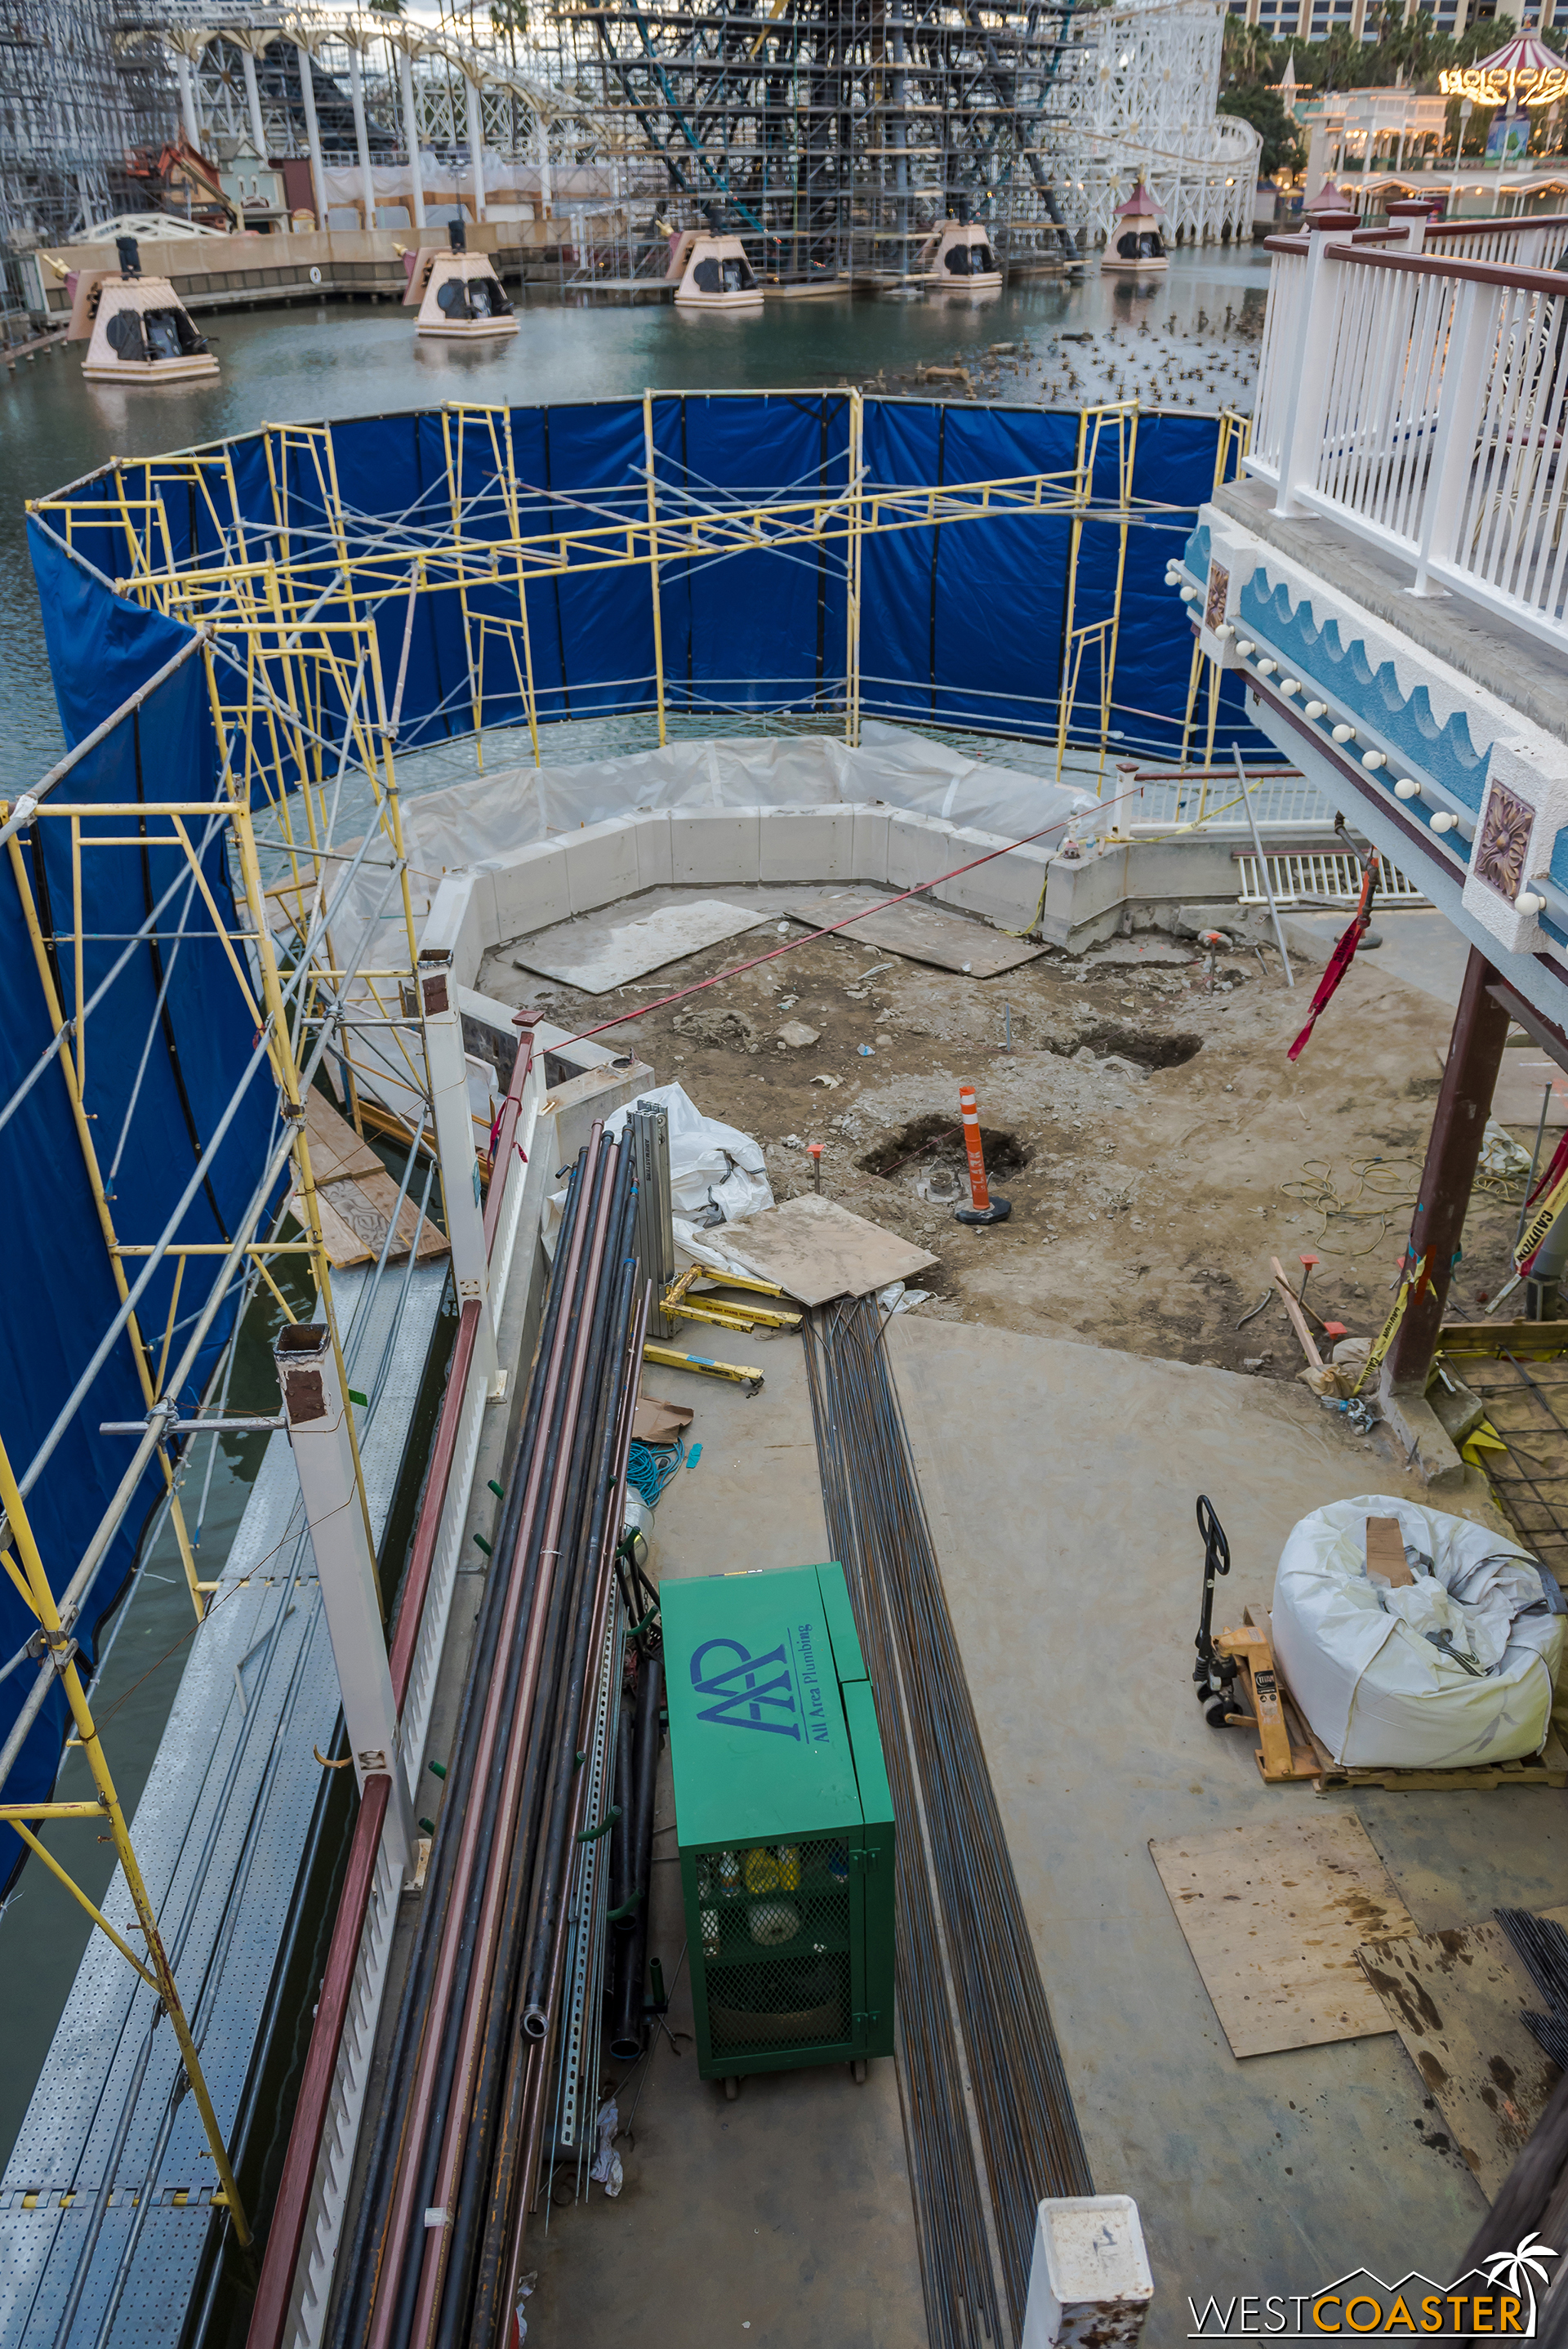 Oh, and they be tearing **** up at the former Ariel's Grotto too!